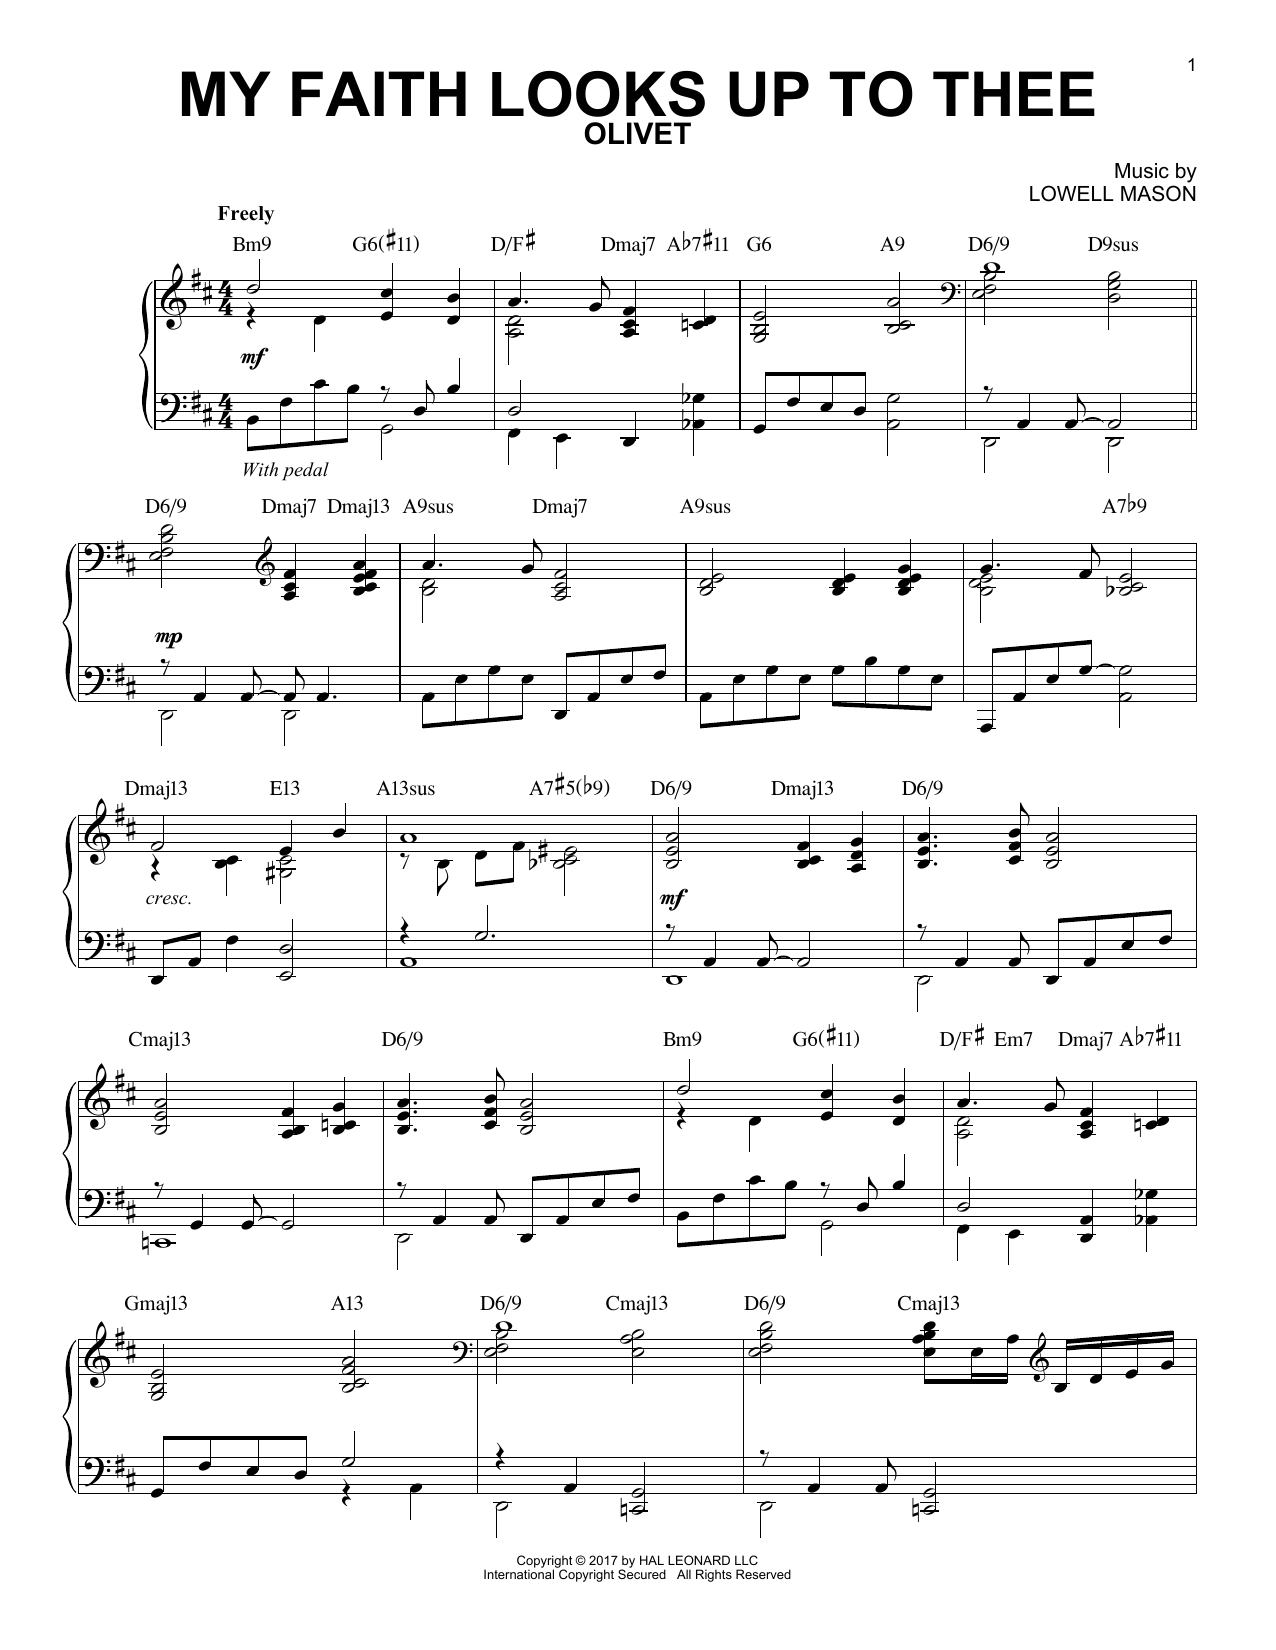 Lowell Mason My Faith Looks Up To Thee [Jazz version] sheet music notes and chords. Download Printable PDF.